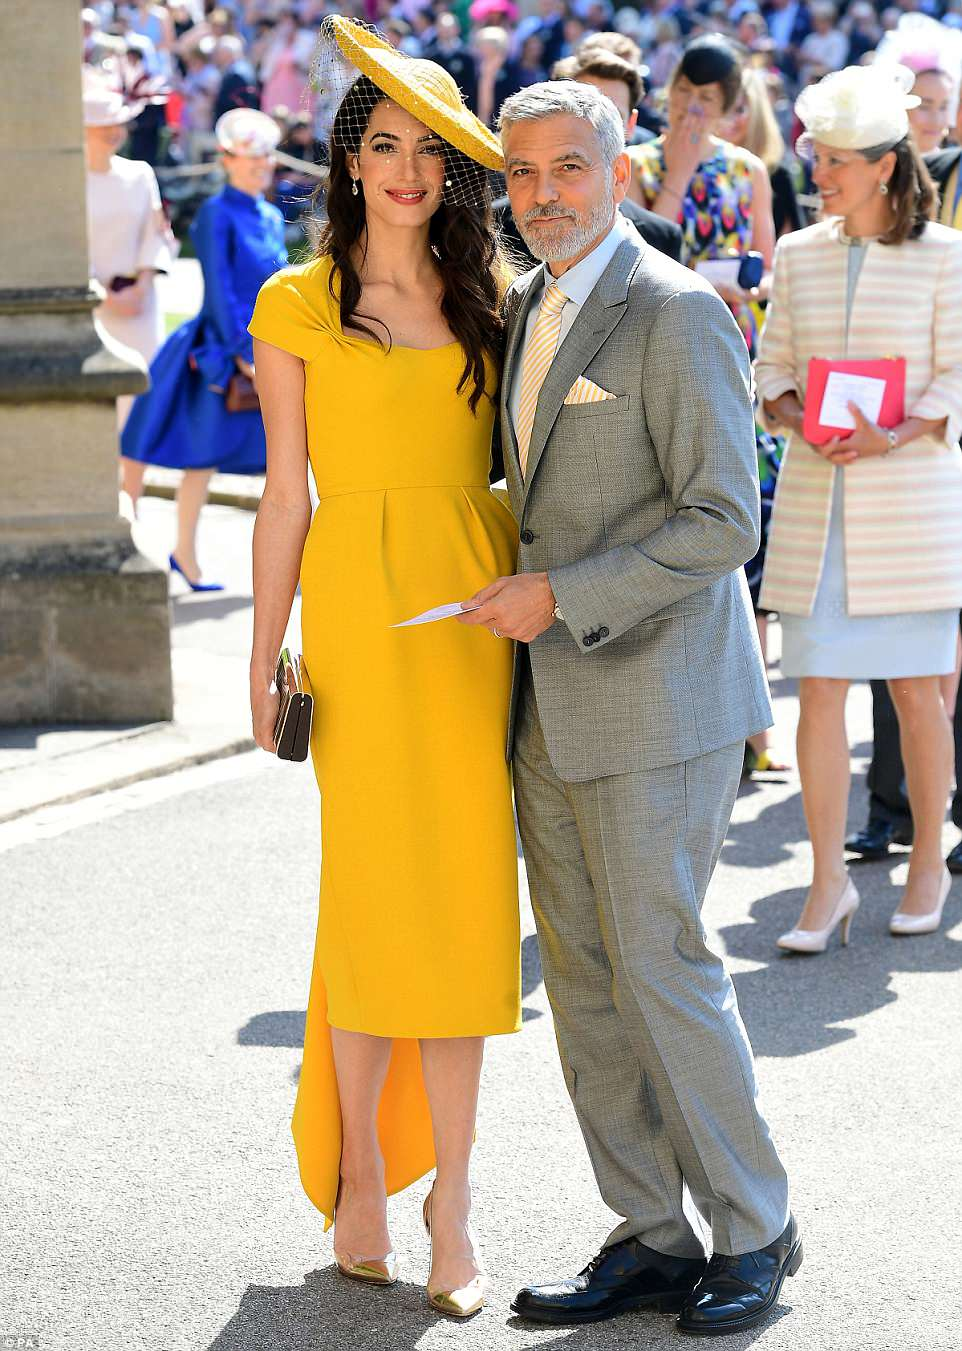 George and Amal at Royal Wedding evening reception Frogmore House 4C6BD31900000578-5751749-George_and_Amal_Clooney_are_among_the_A_listers_packing_out_Harr-m-64_1526888034520